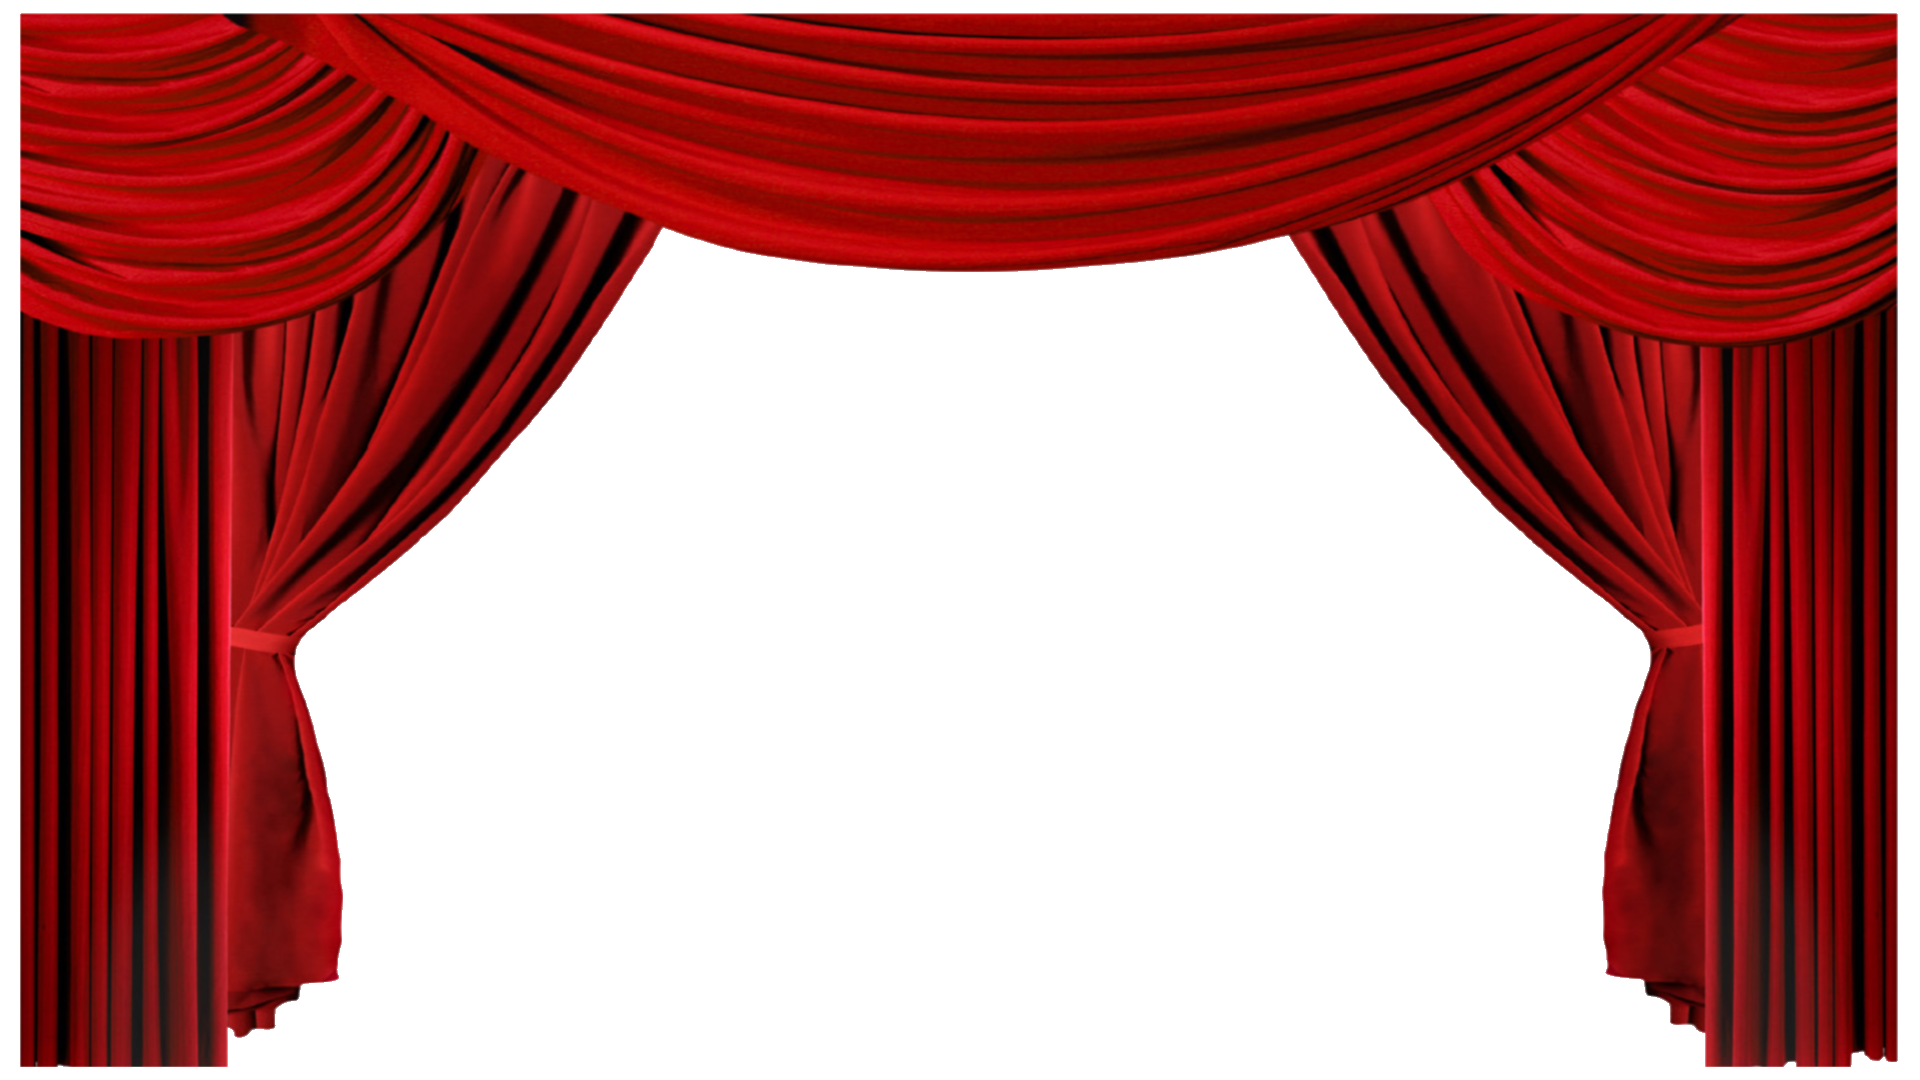 Theatre curtains png - Theater Curtains Png Best 2017